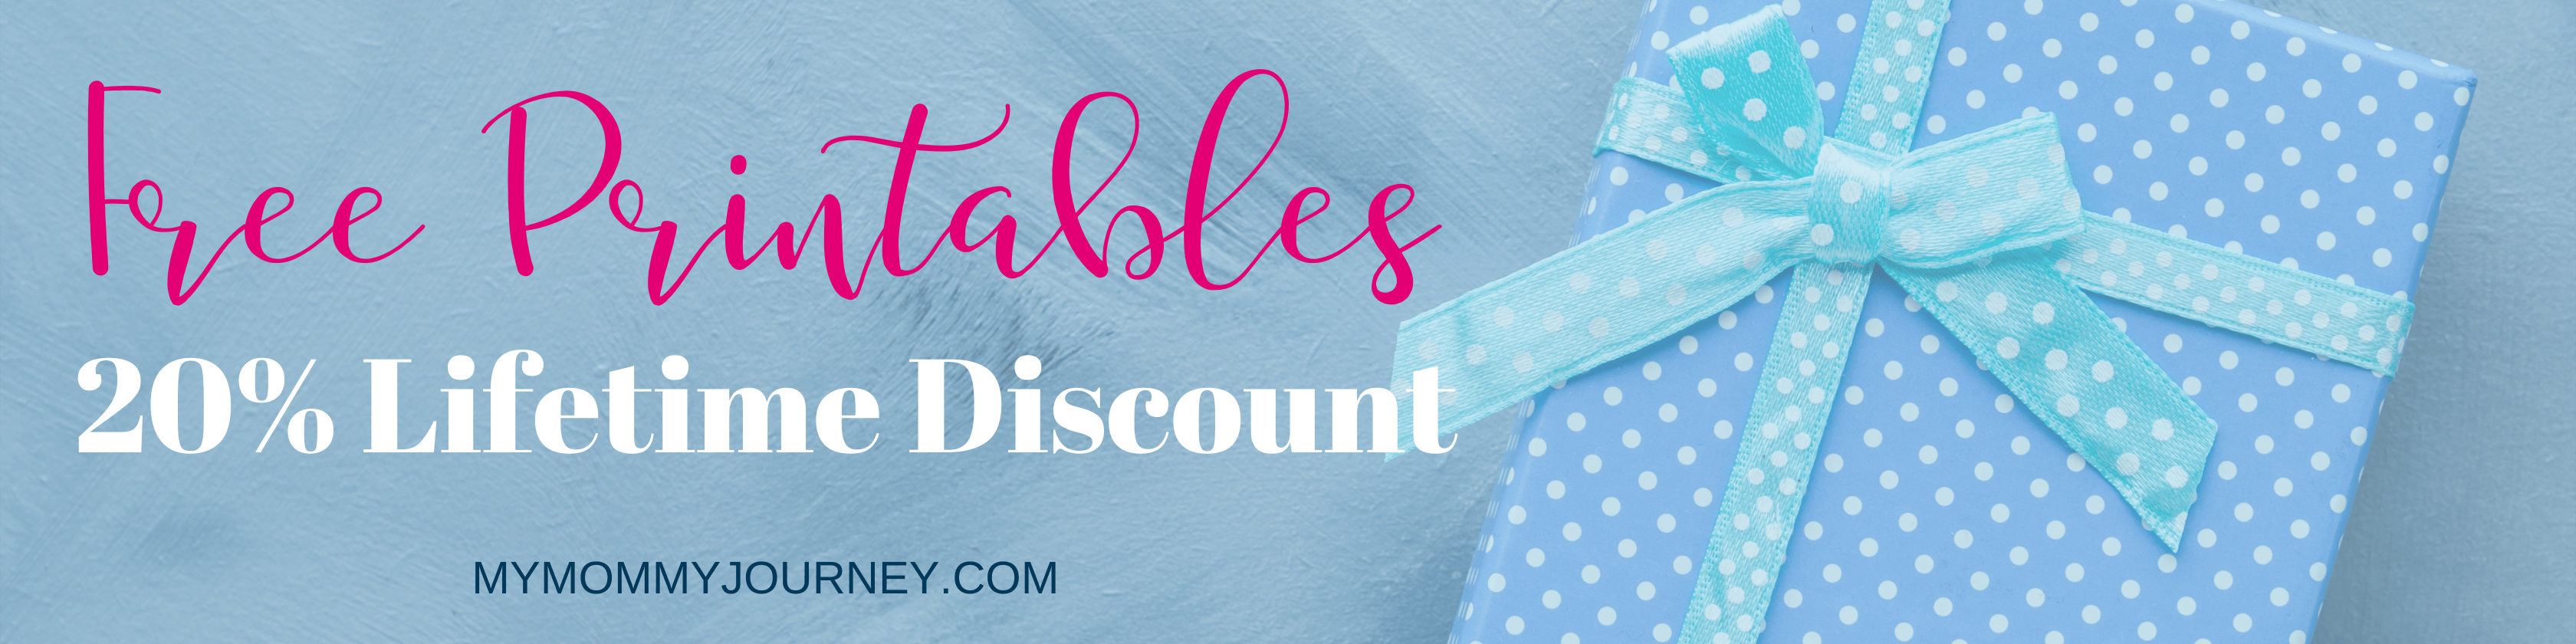 free printables and lifetime discount offer